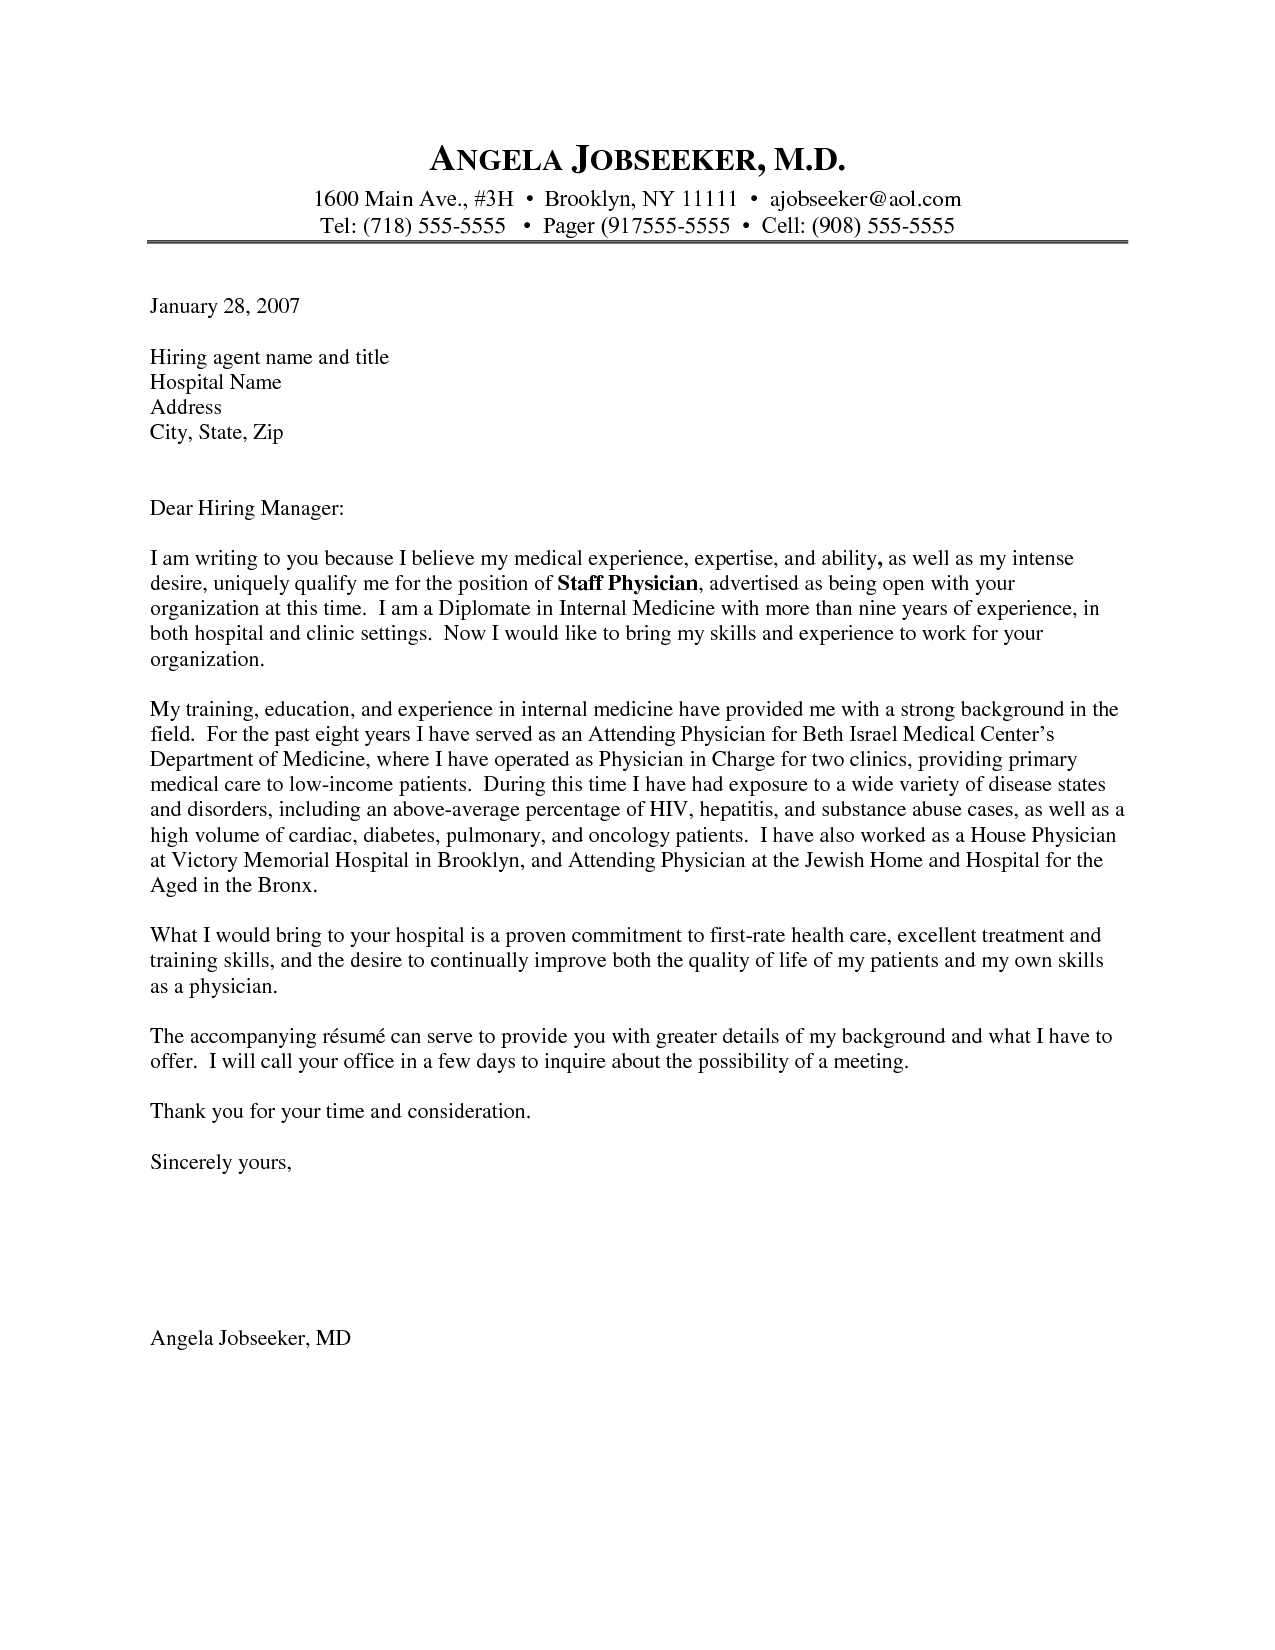 examples of medical coverletters  Doctor Cover Letter Example  My style  Cover letter for